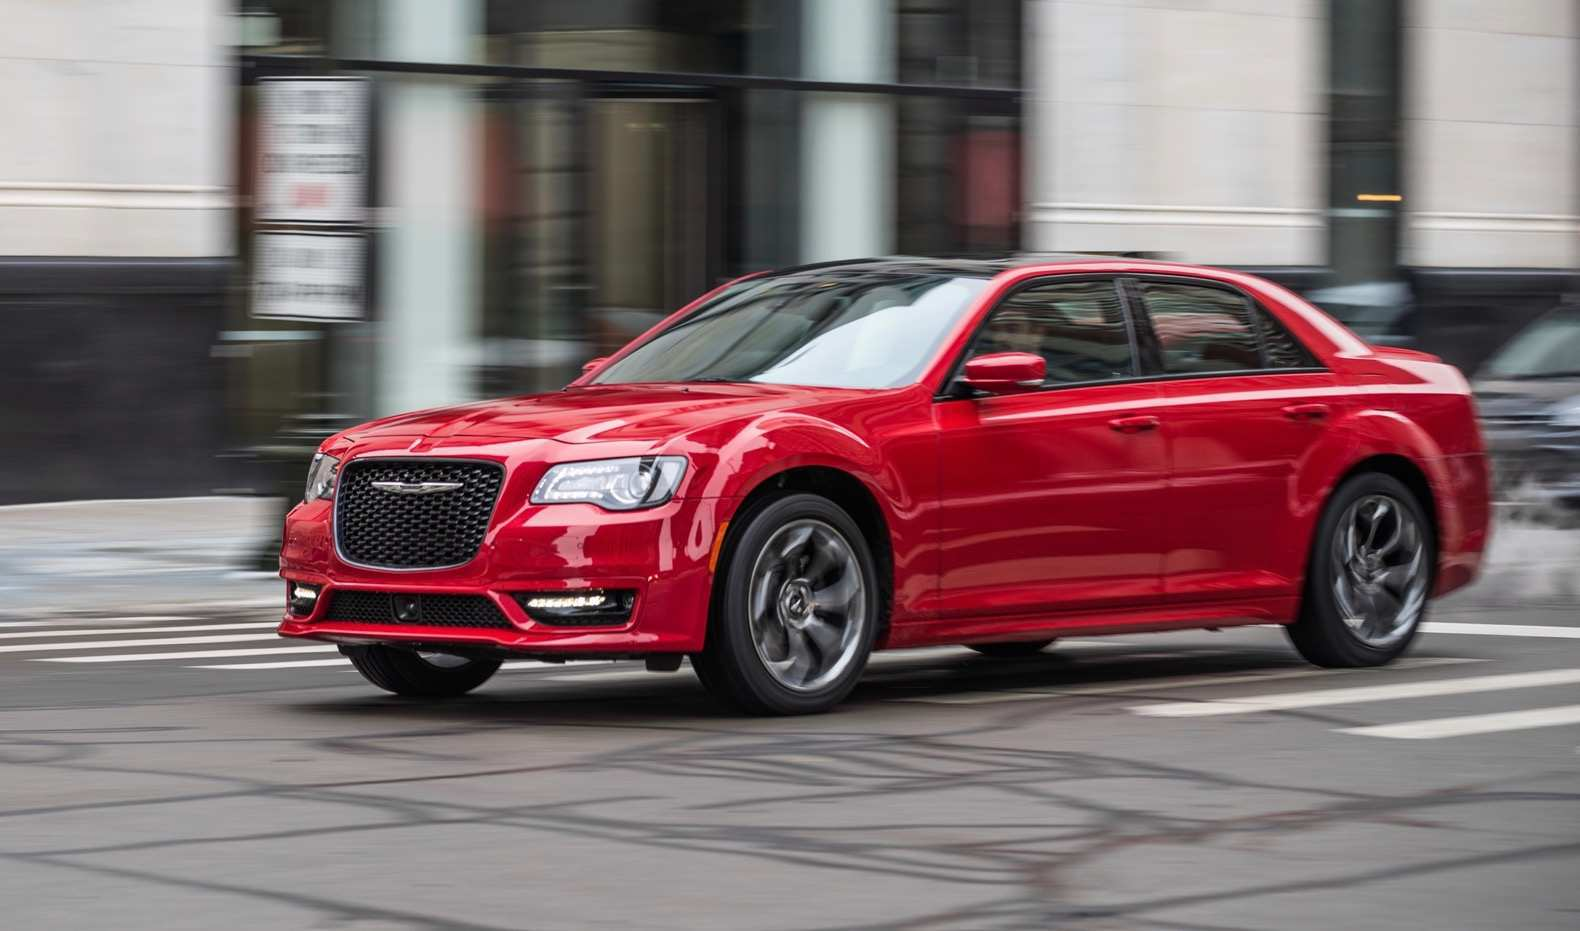 69 The Best 2020 Chrysler 300 Srt8 Concept And Review